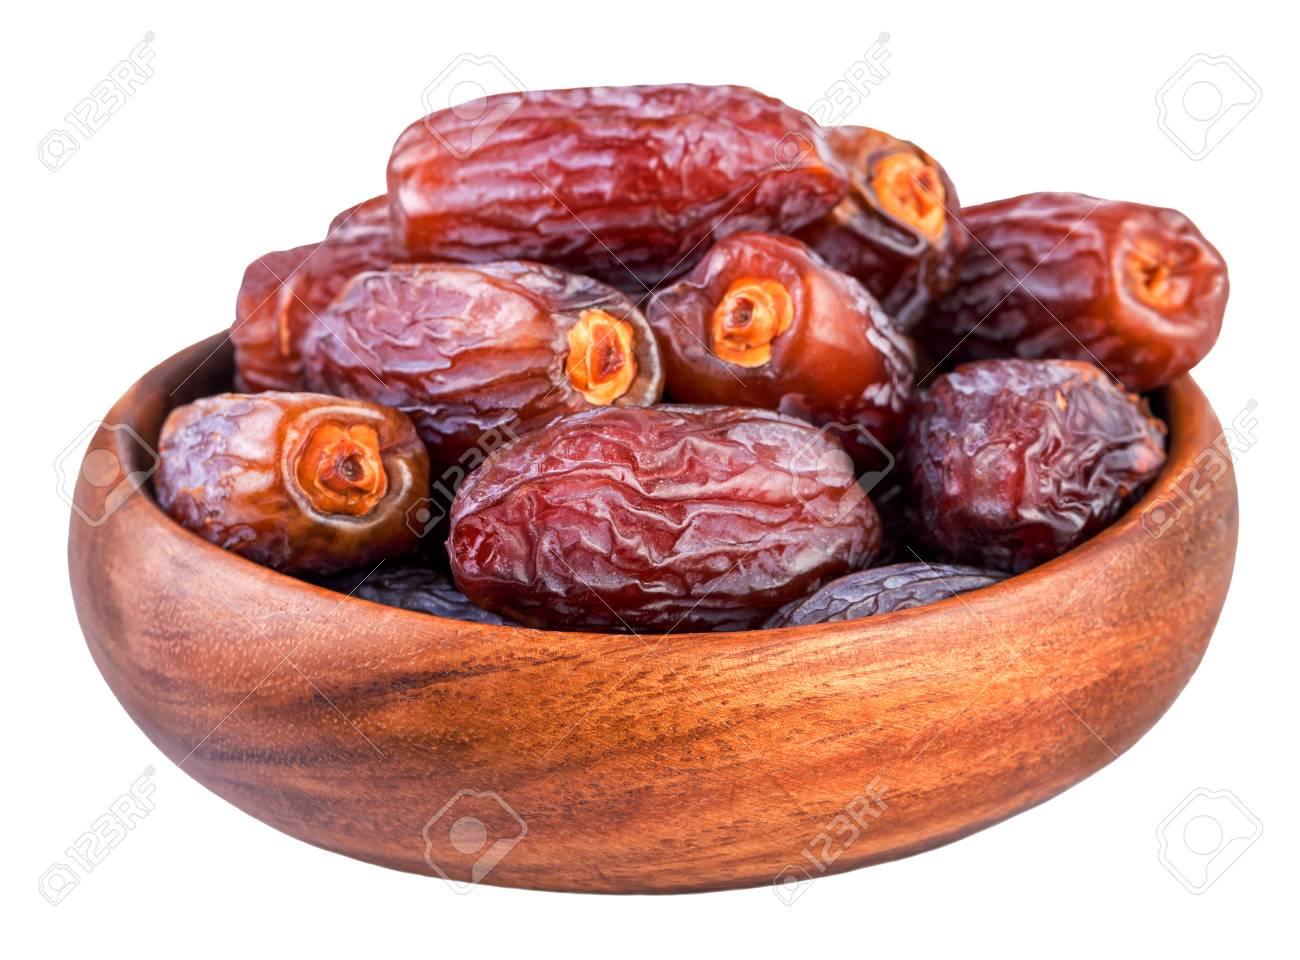 Eat Carry nuts and dry fruits